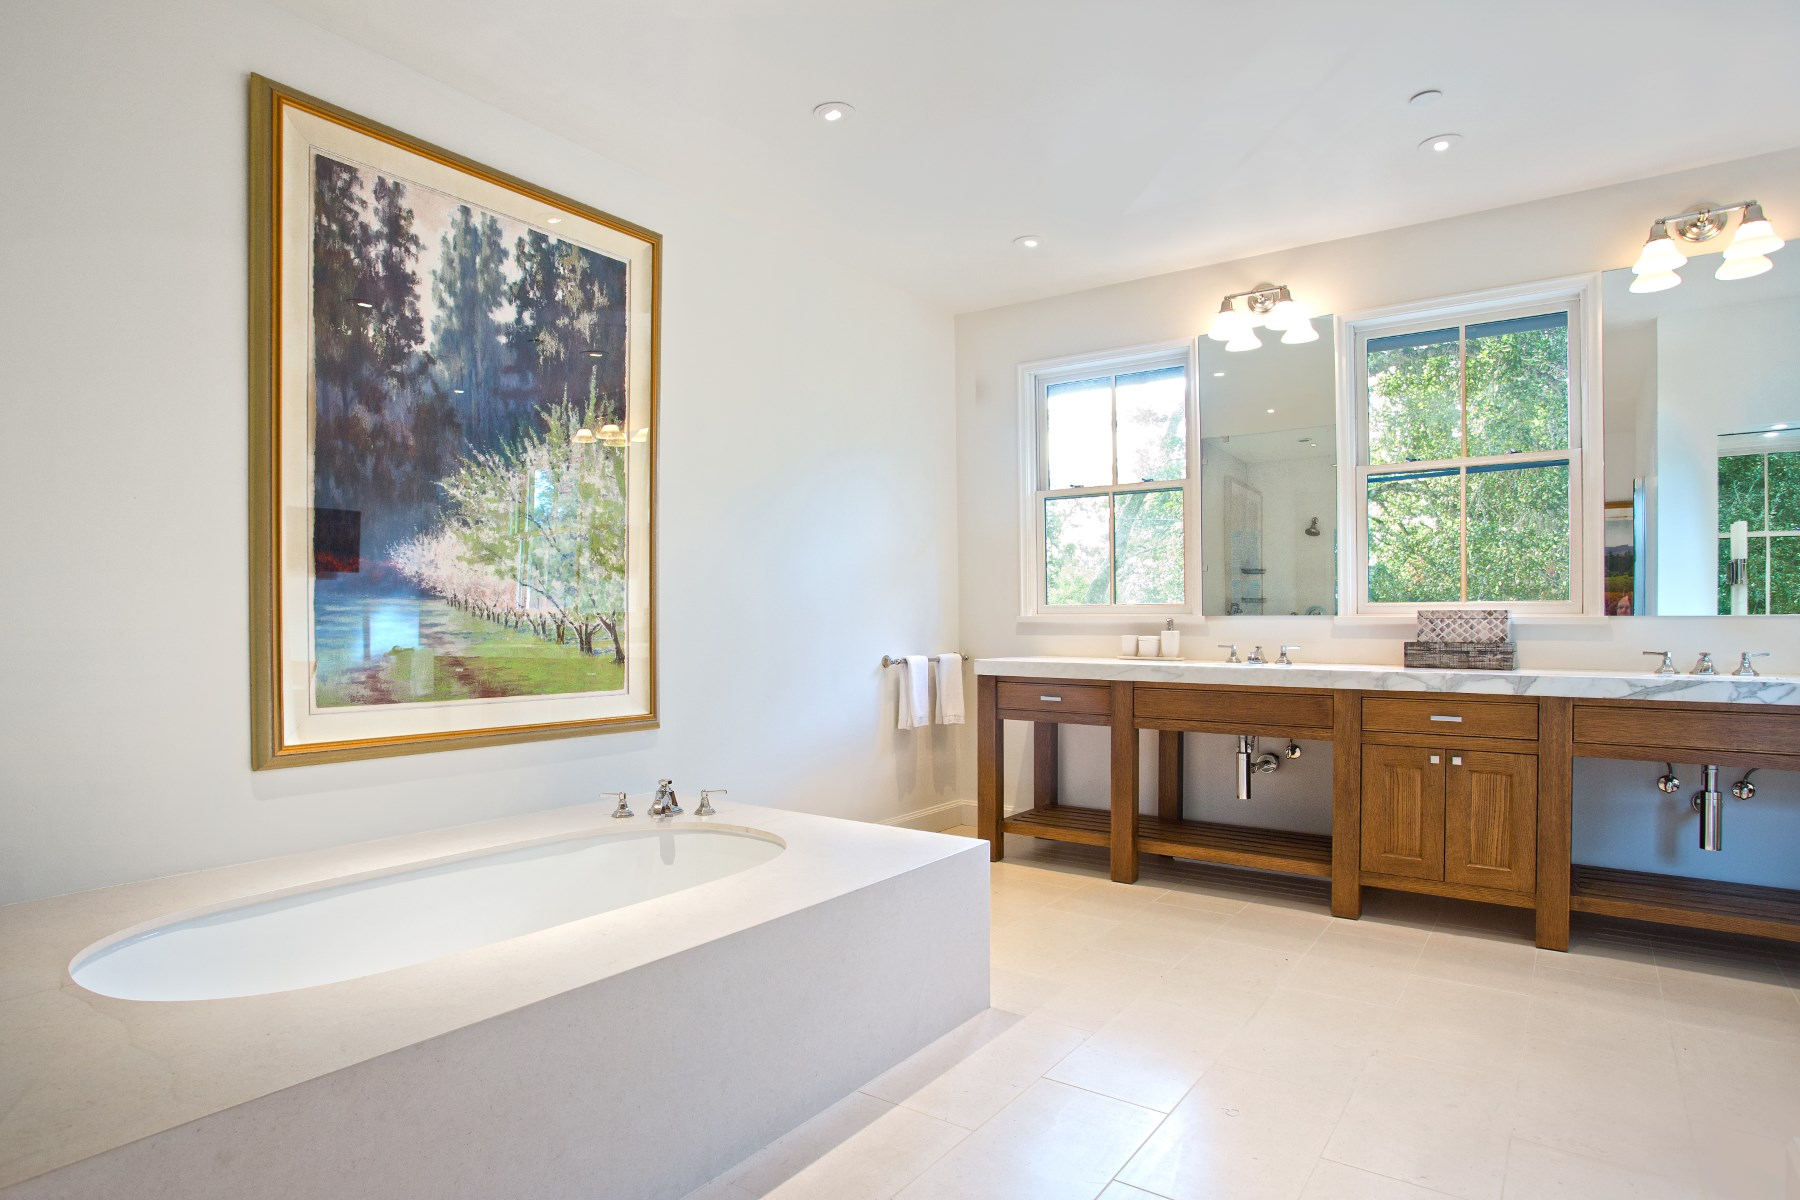 Additional photo for property listing at World Class Wine Country 6255 Dry Creek Rd Healdsburg, California 95448 United States